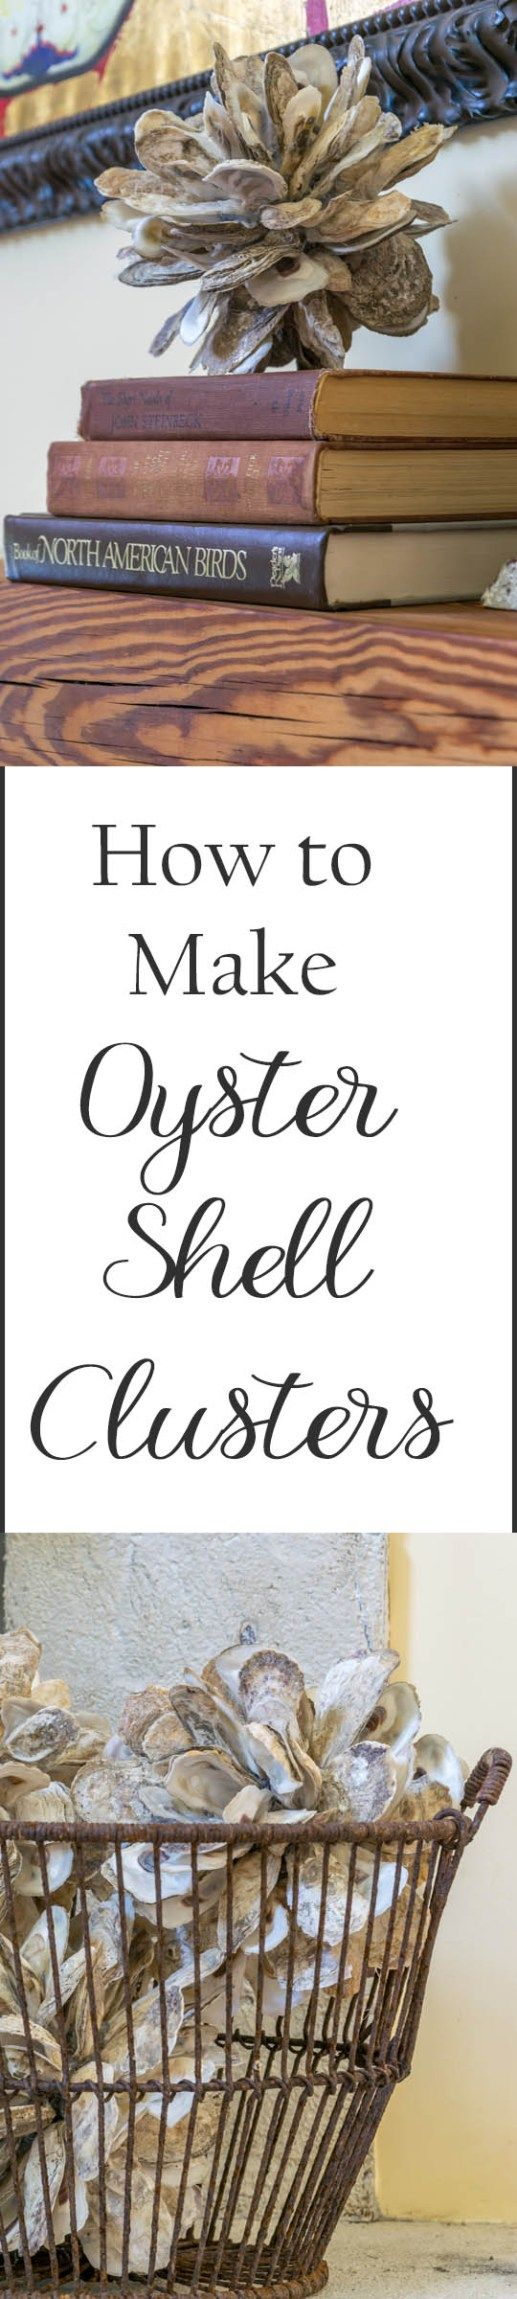 Photo of How to Make Oyster Shell Clusters